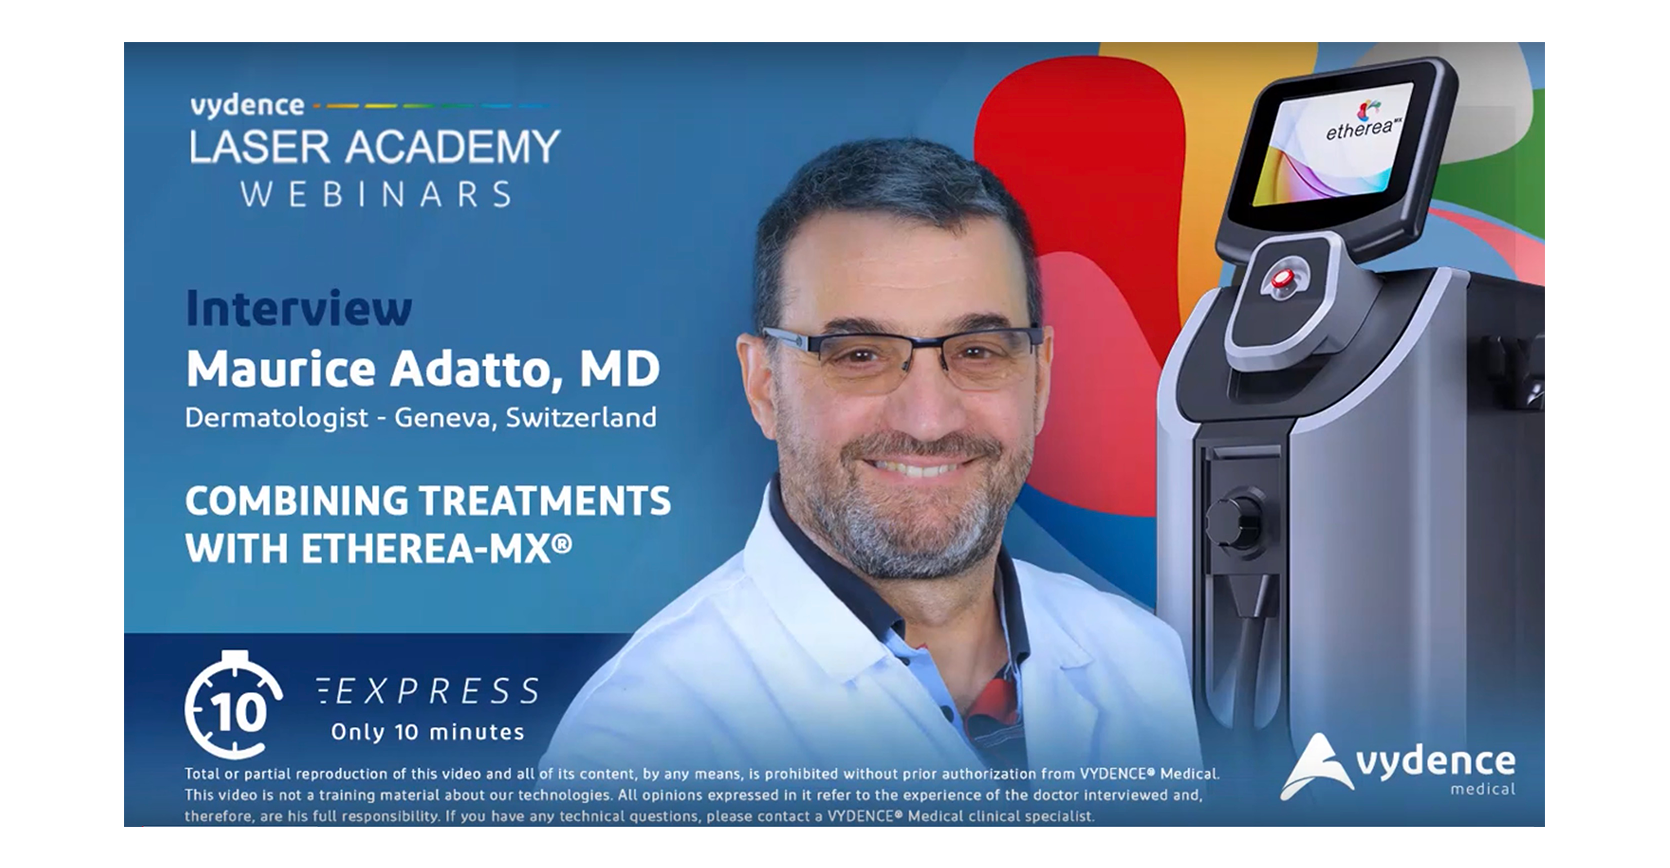 Interview with Maurice Adatto, MD